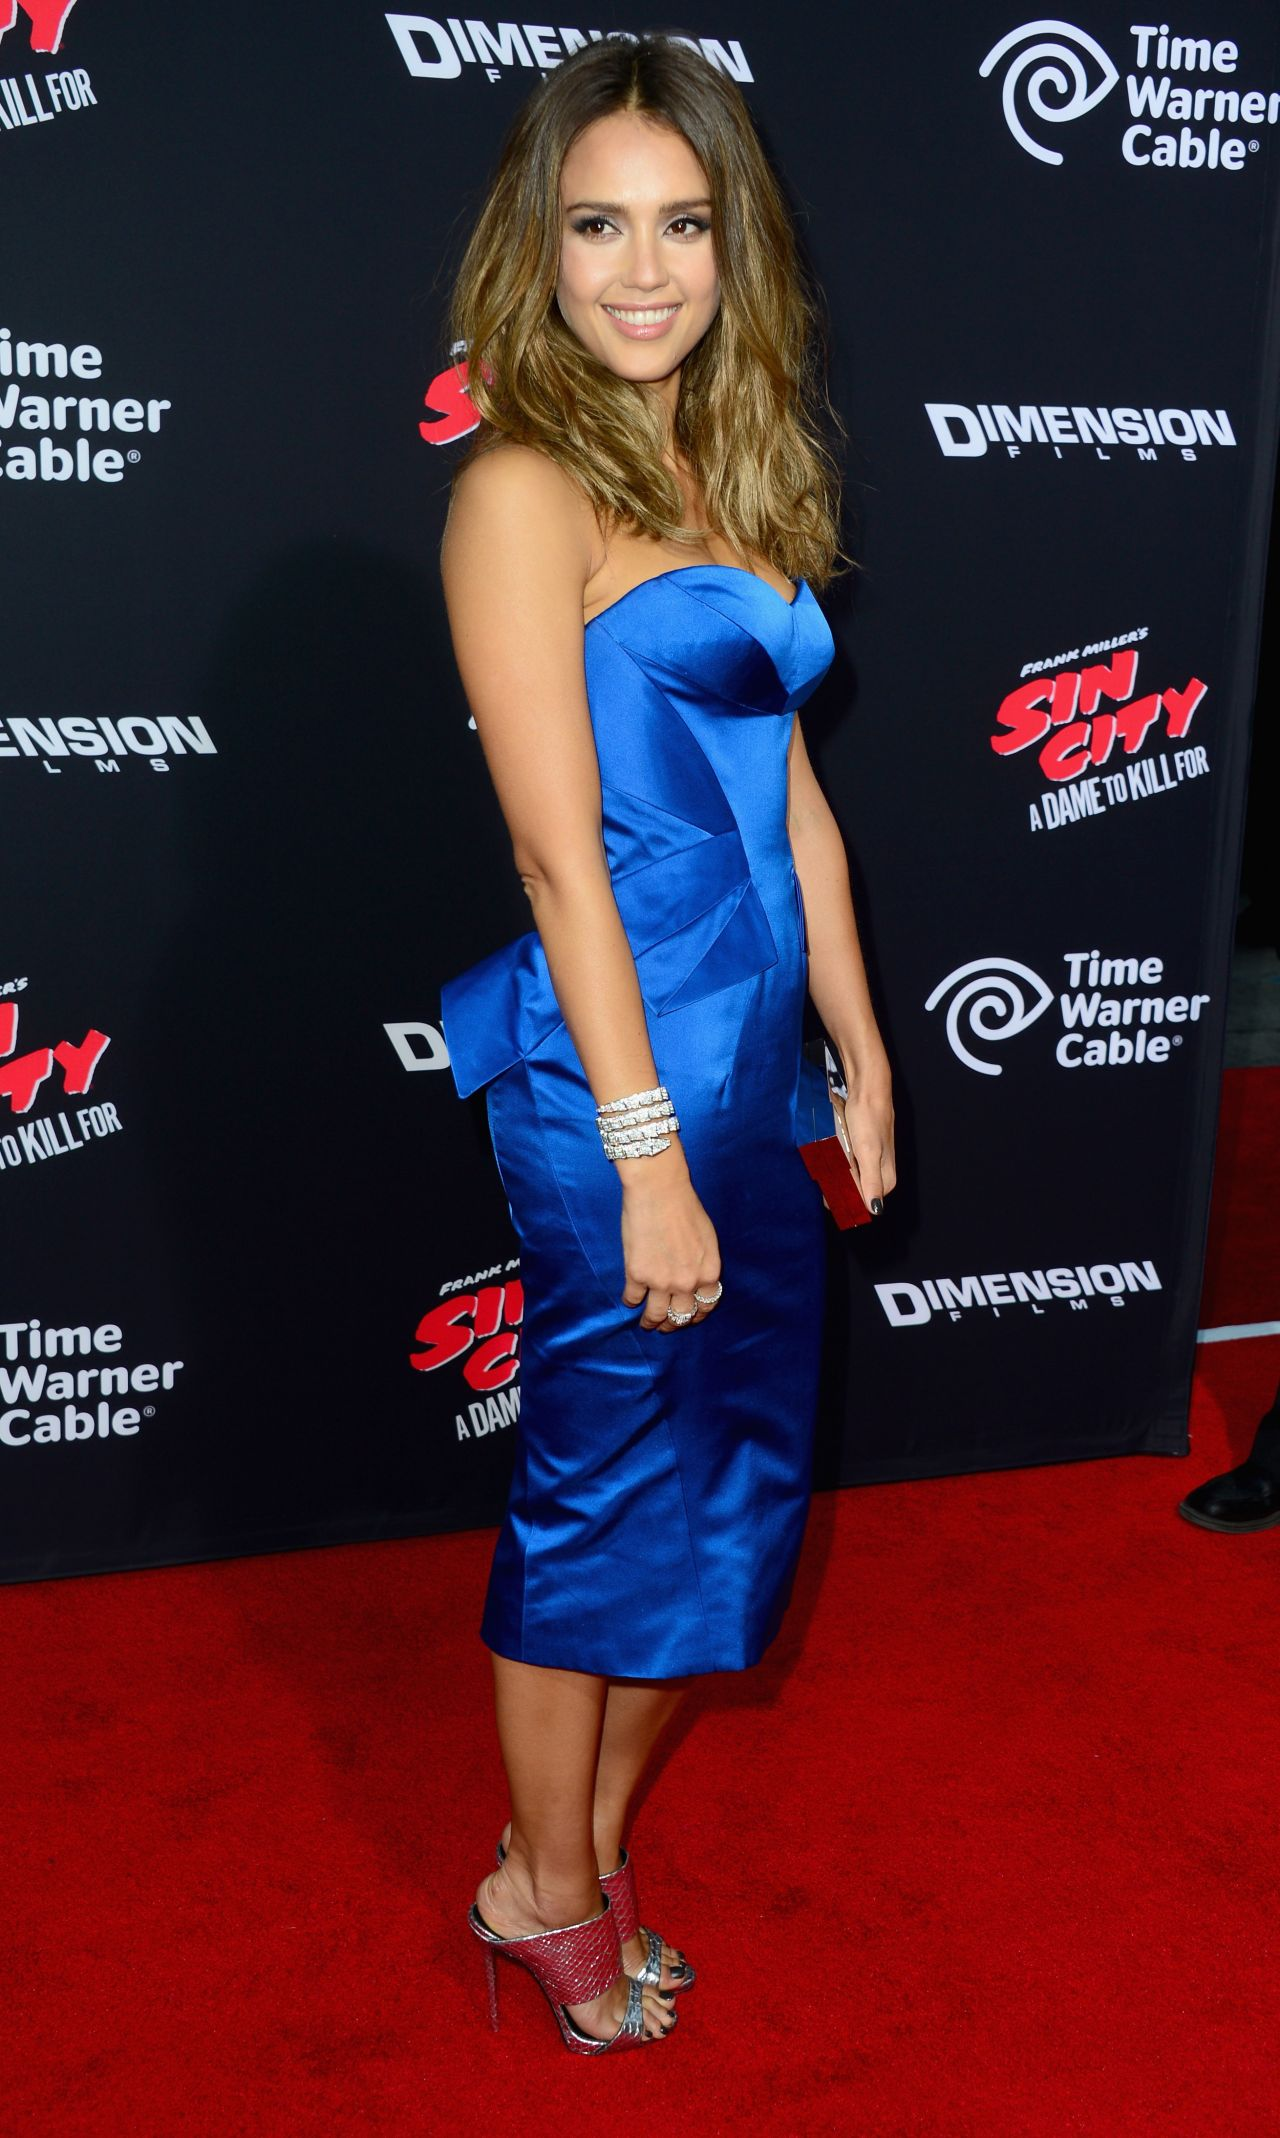 Jessica Alba Sin City A Dame To Kill For Premiere In